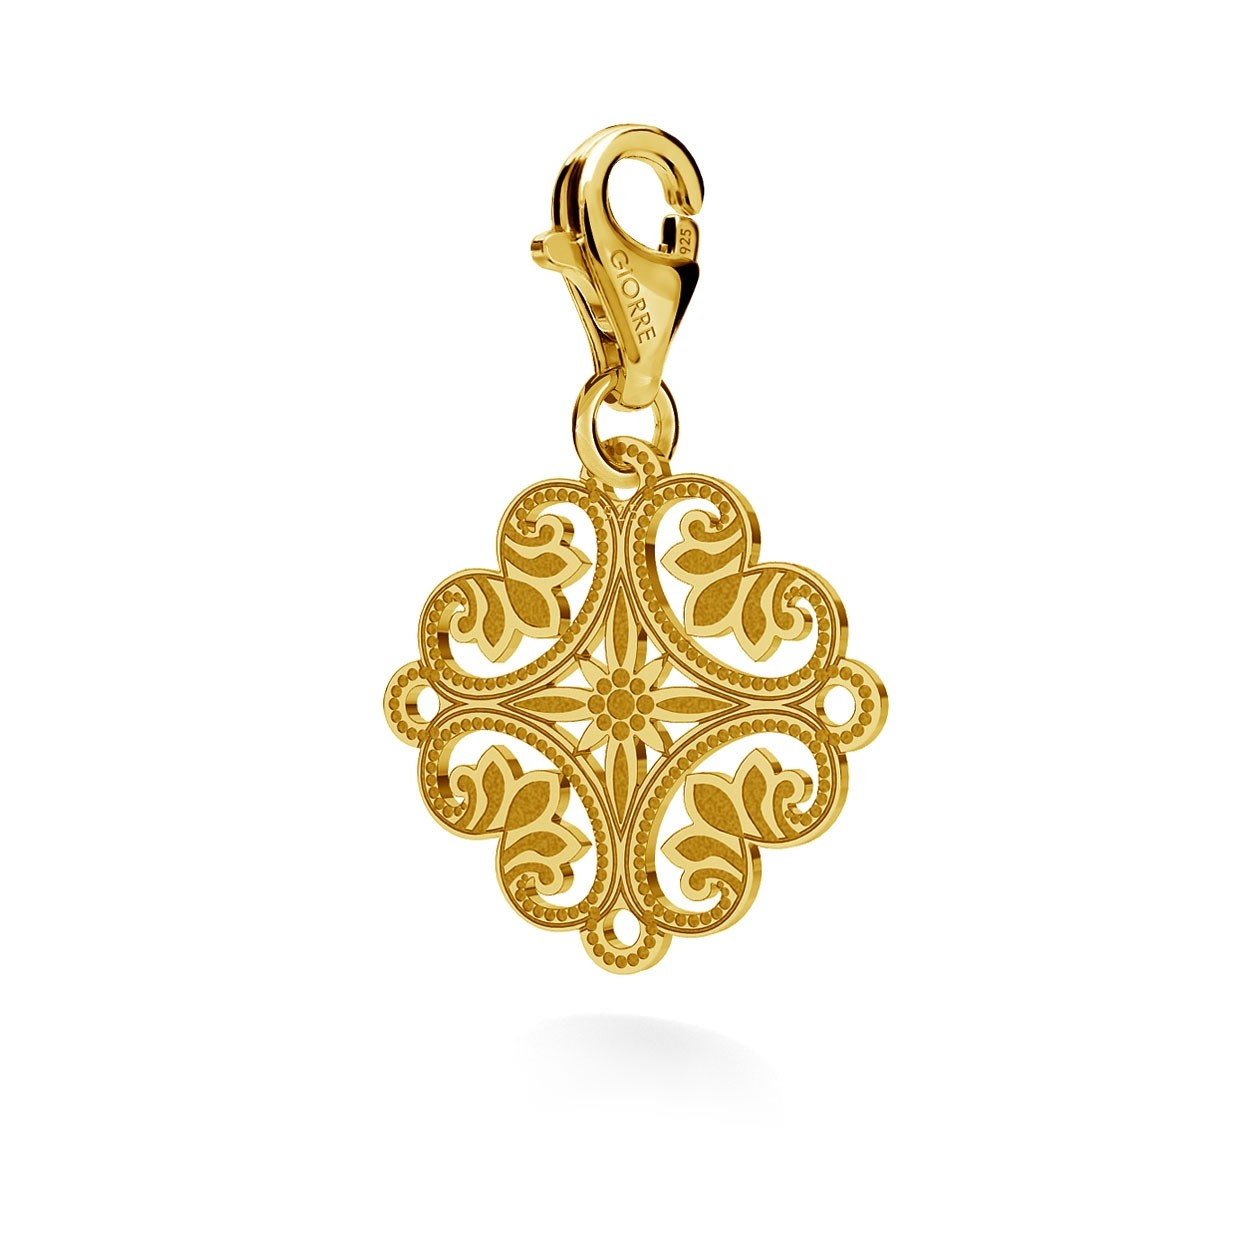 CHARM 103, BOHO ROSETTE, STERLING SILVER (925) RHODIUM OR GOLD PLATED